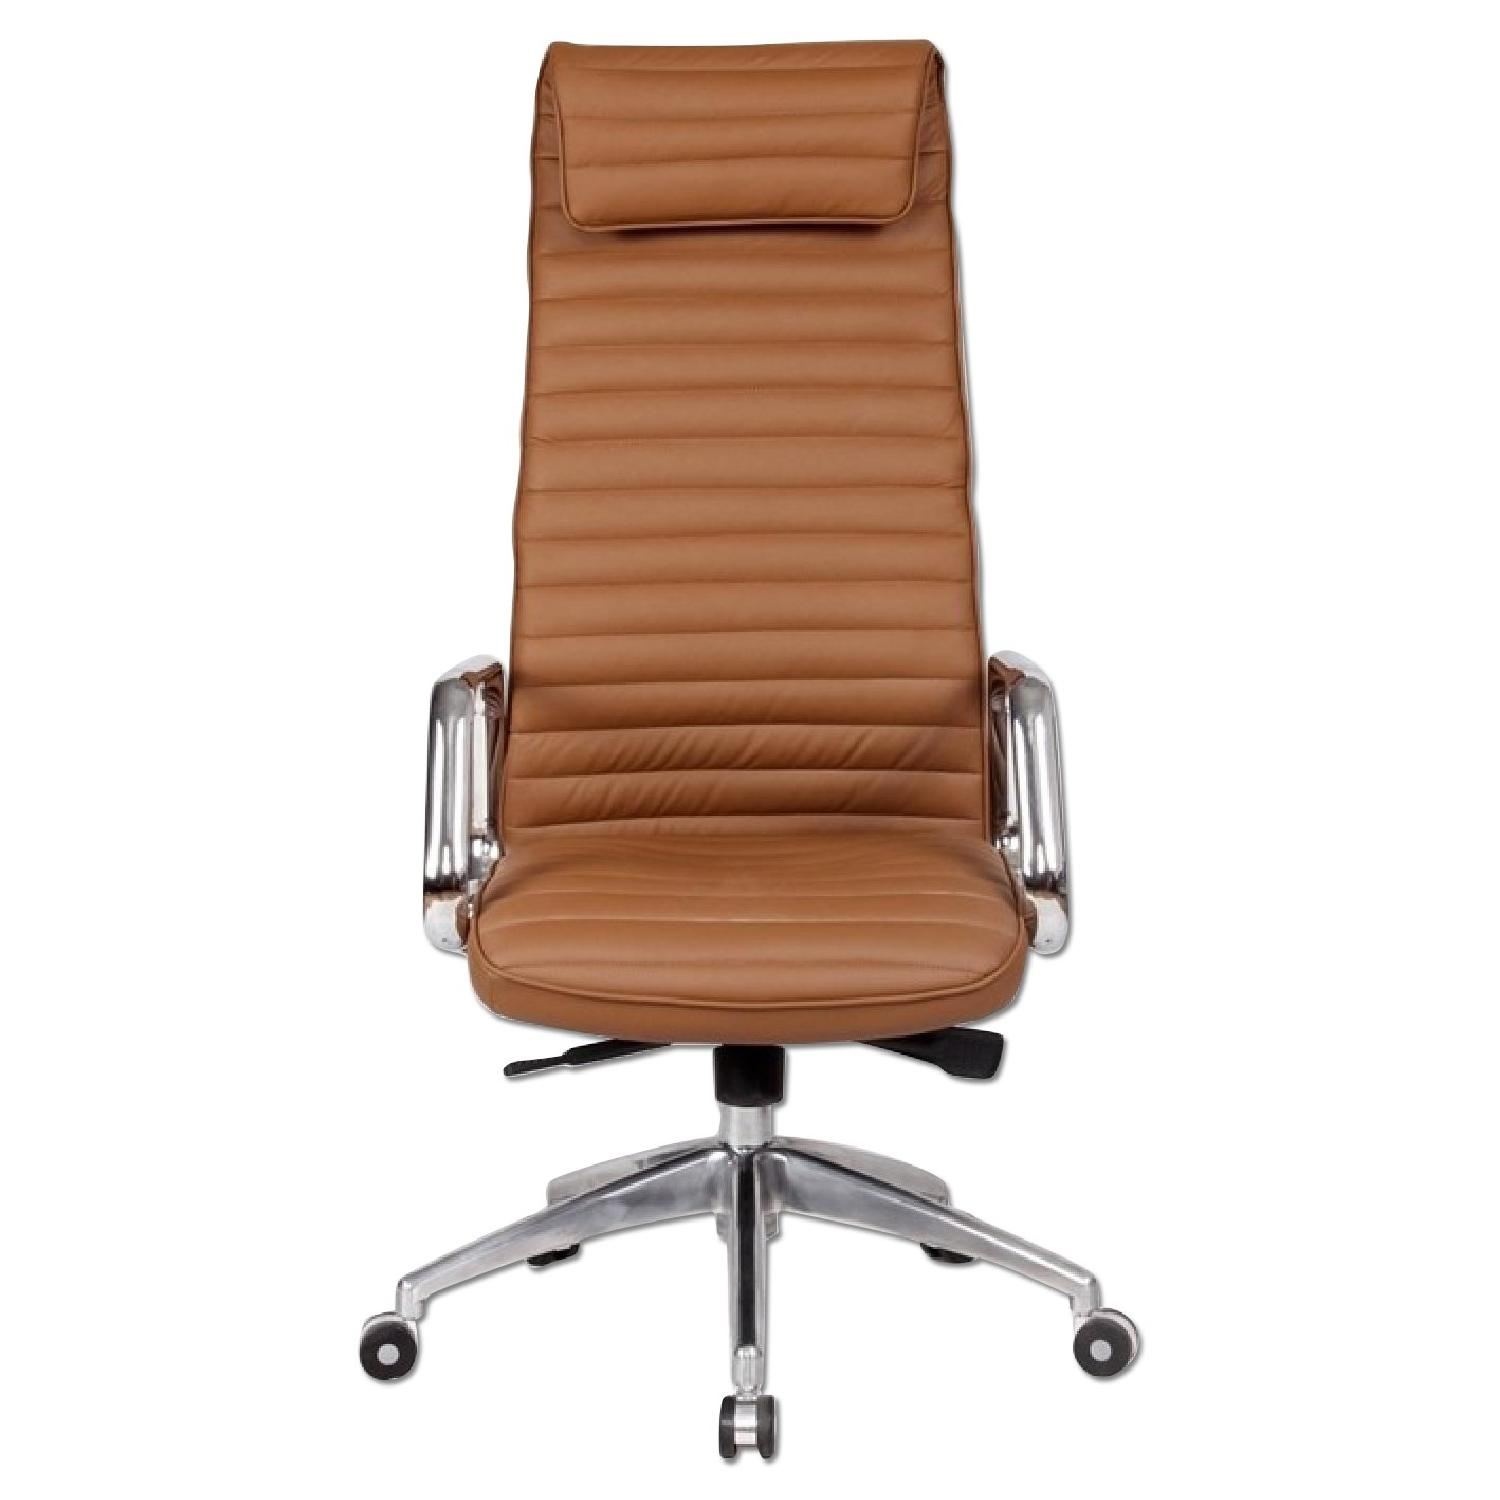 Steel Frame High Back Office Chair w/ Padded Seat & Back Uph